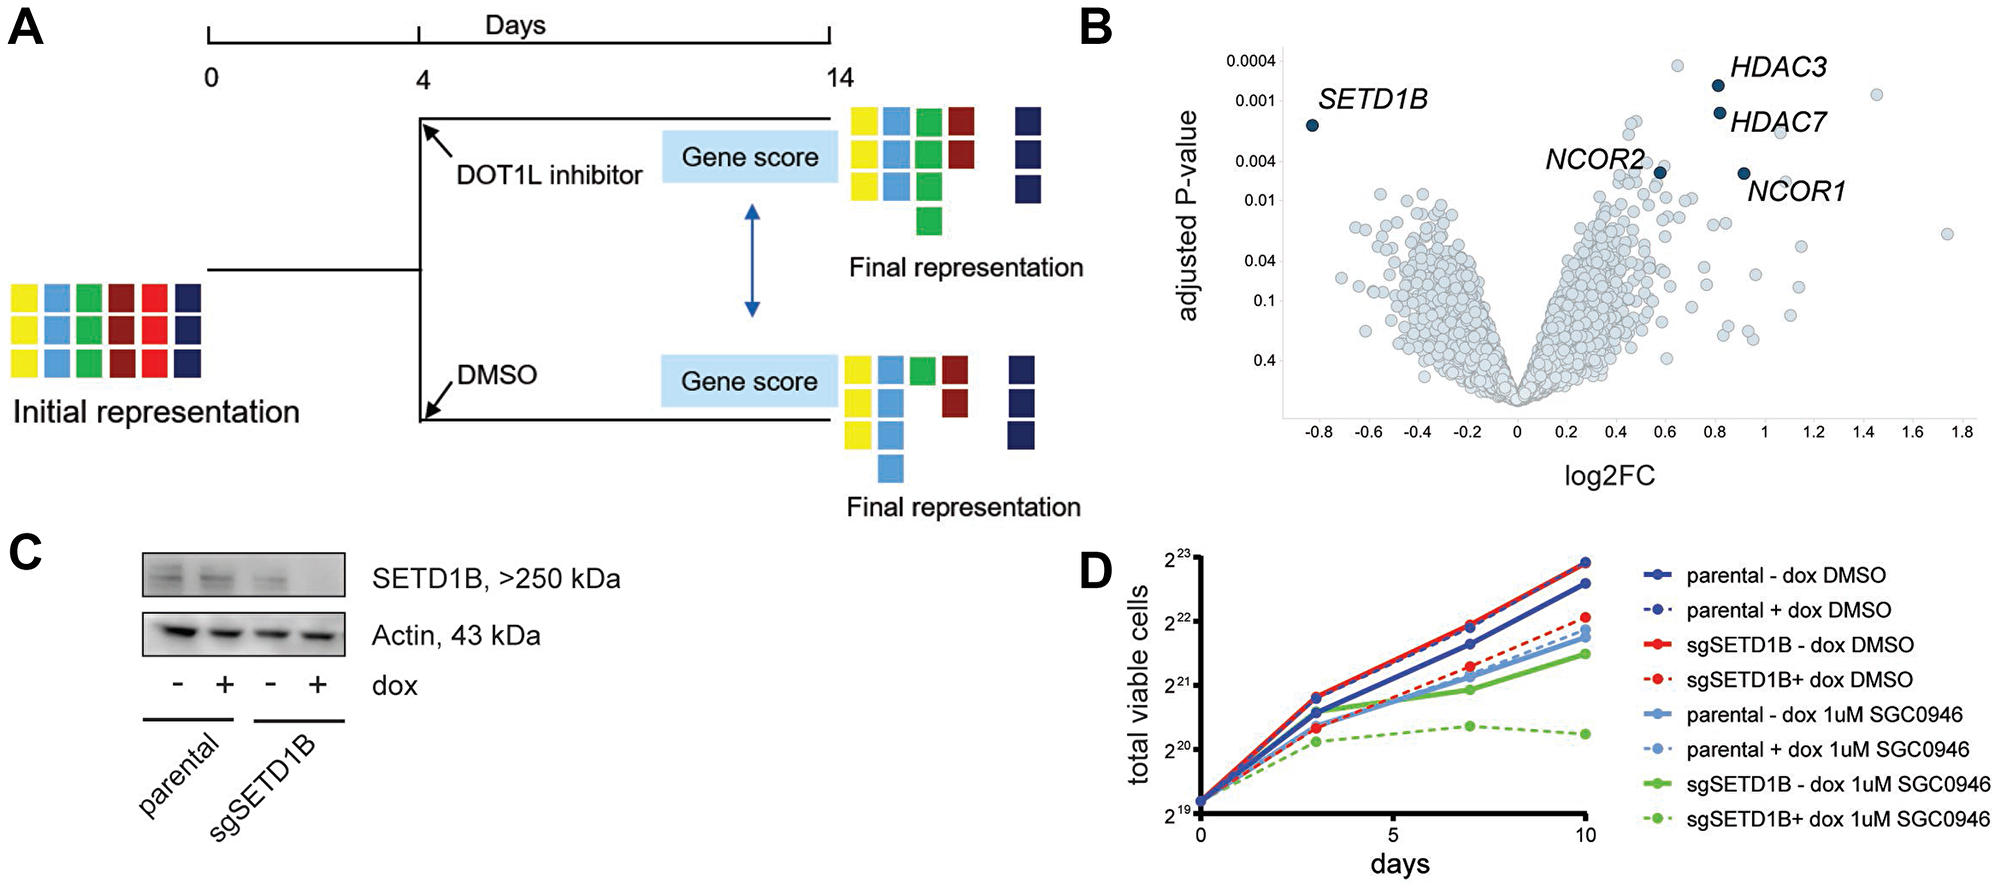 Whole-genome CRISPR screen with or without DOT1L inhibition indicates sensitization by SETD1B inactivation.